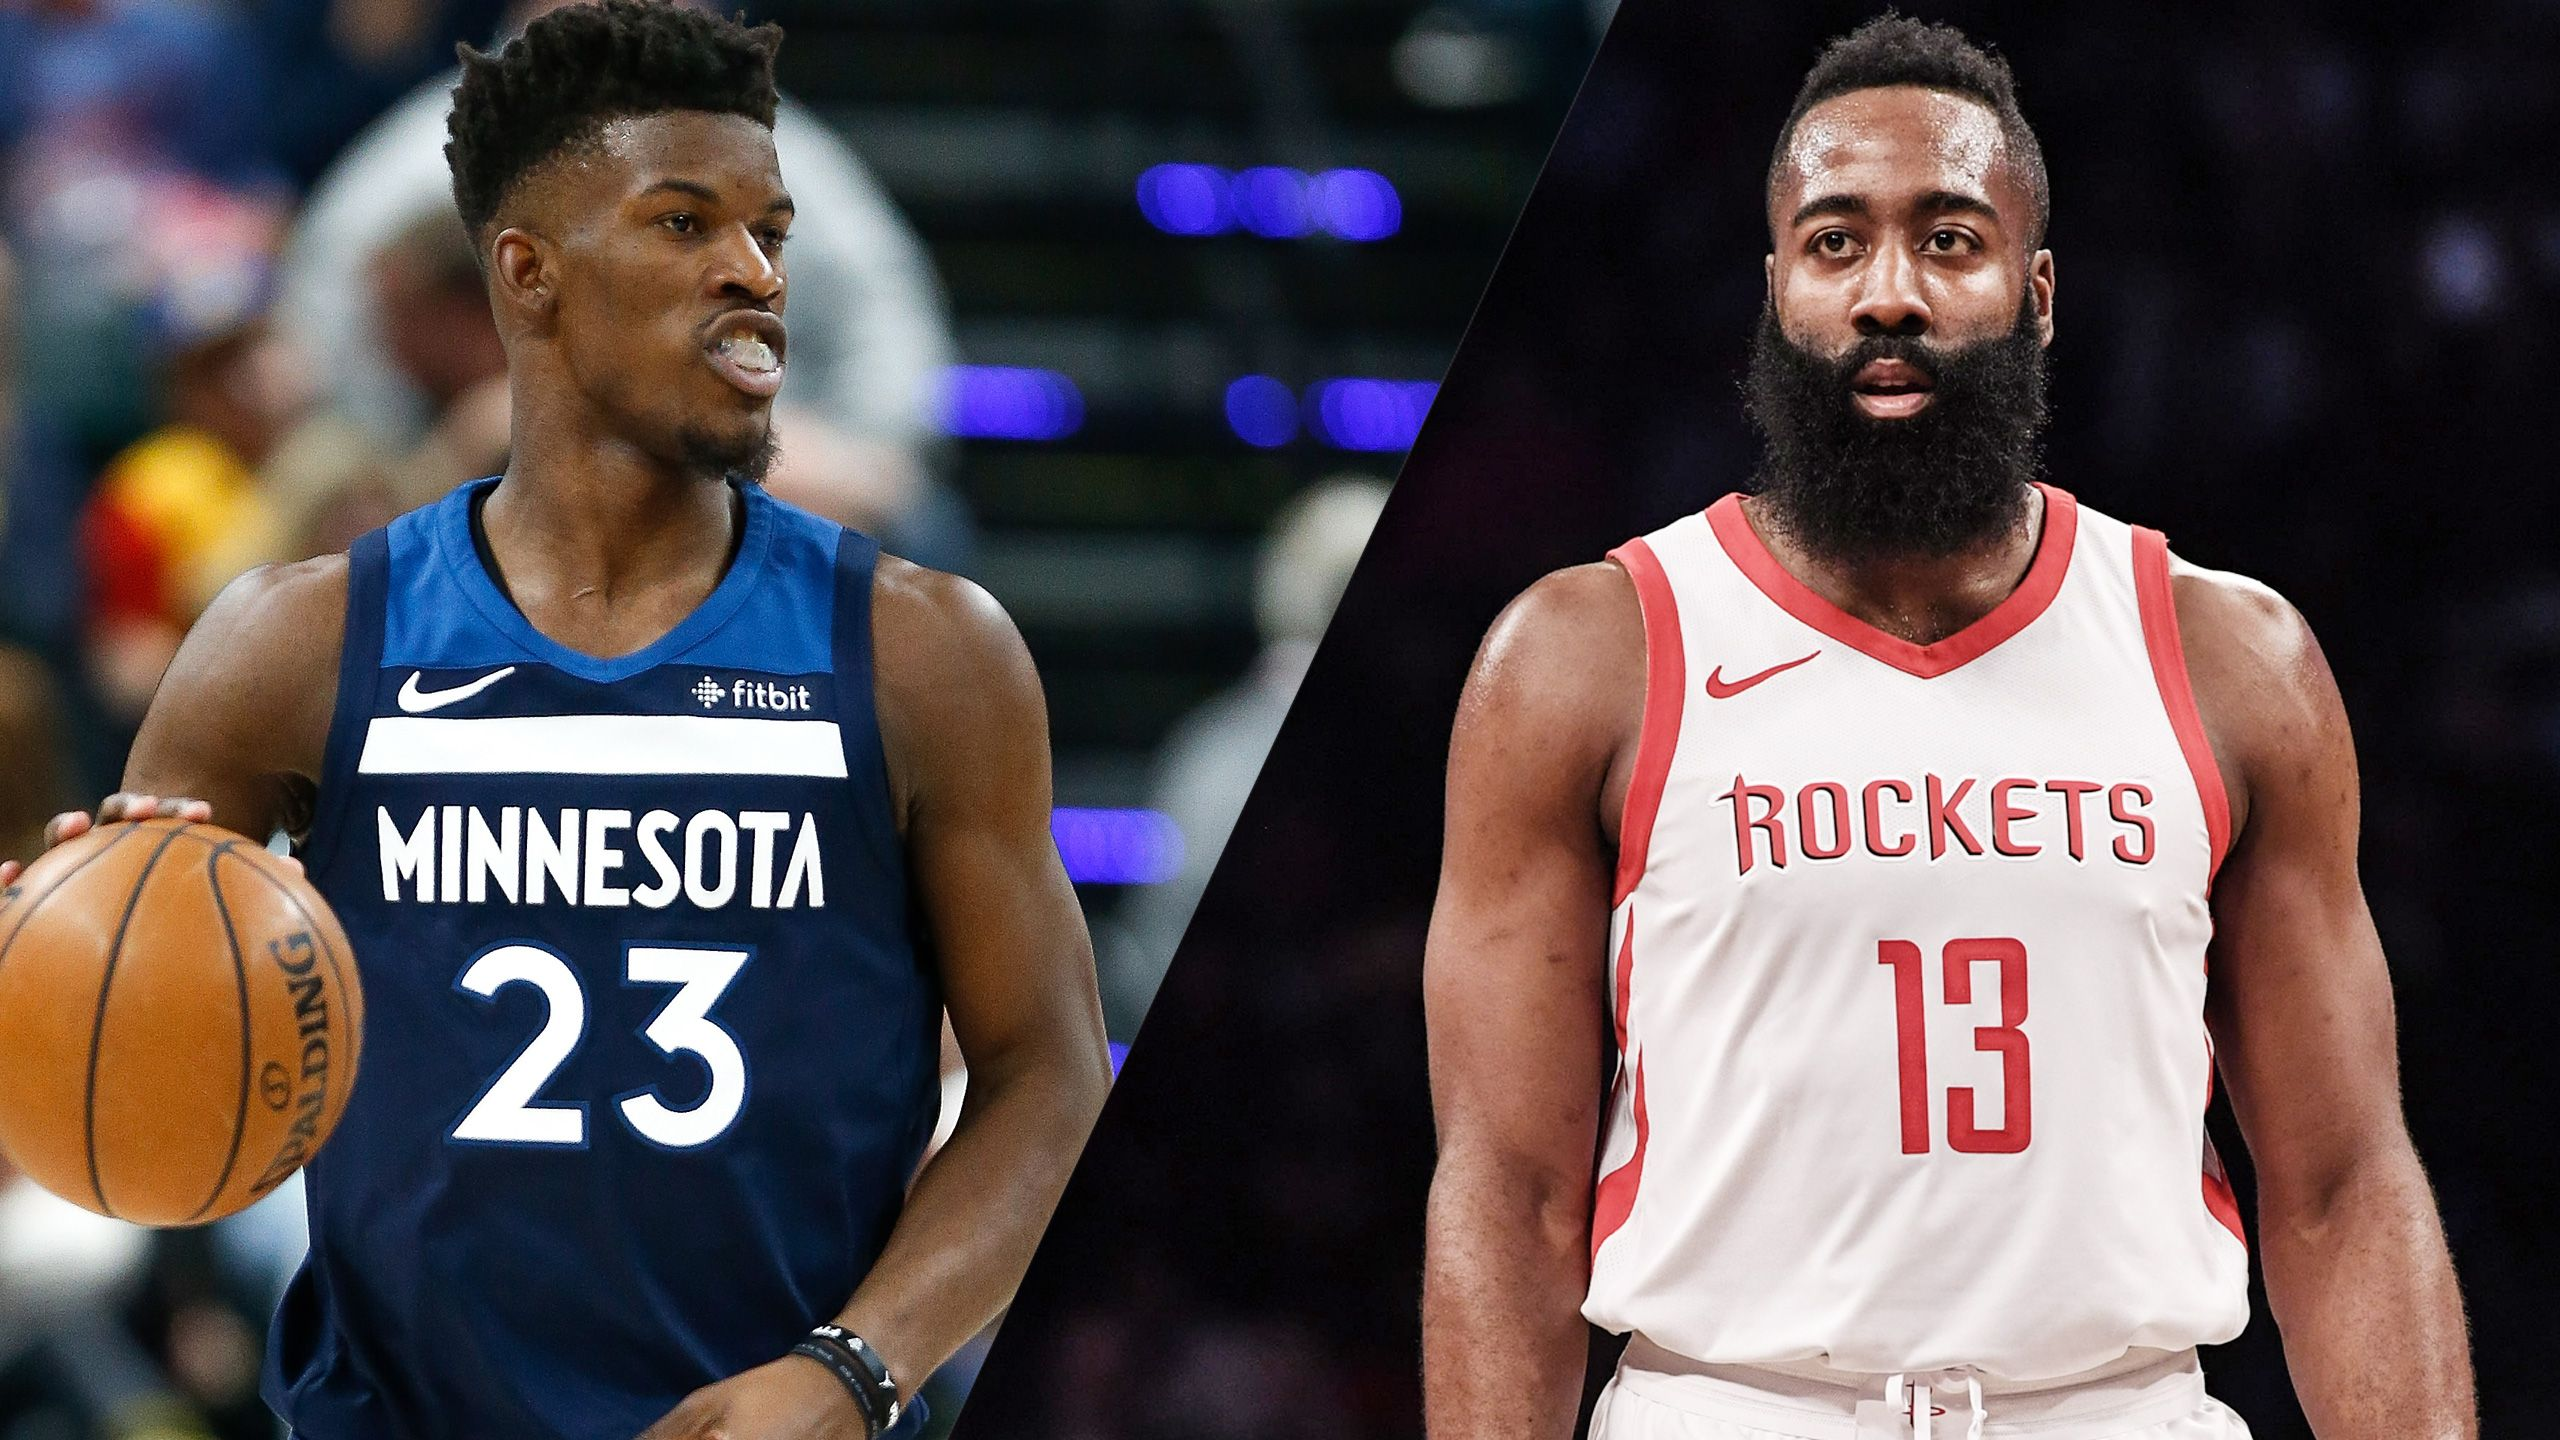 Minnesota Timberwolves vs. Houston Rockets (re-air)